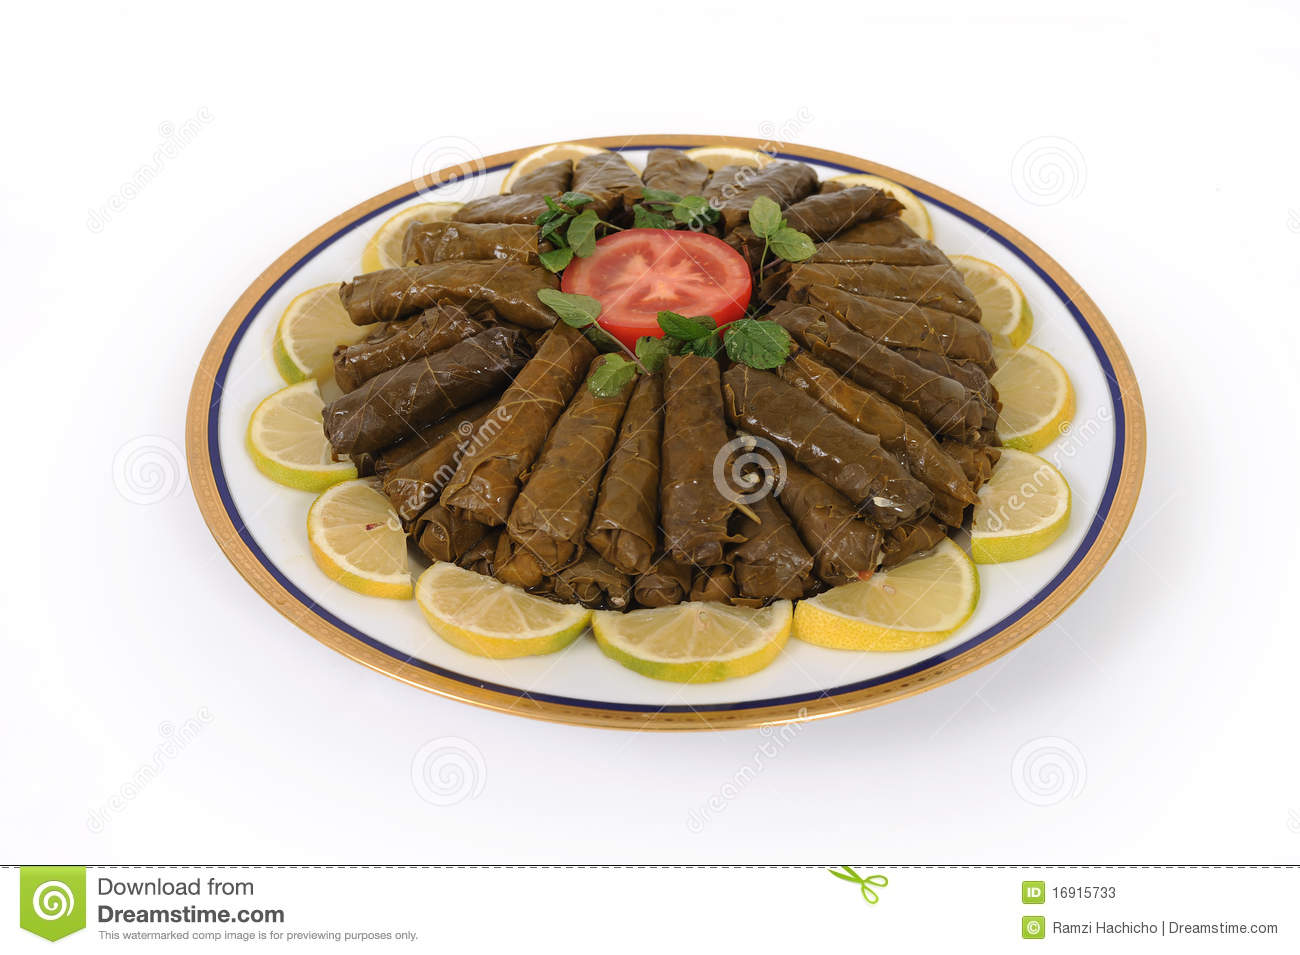 Lebanese food clipart.